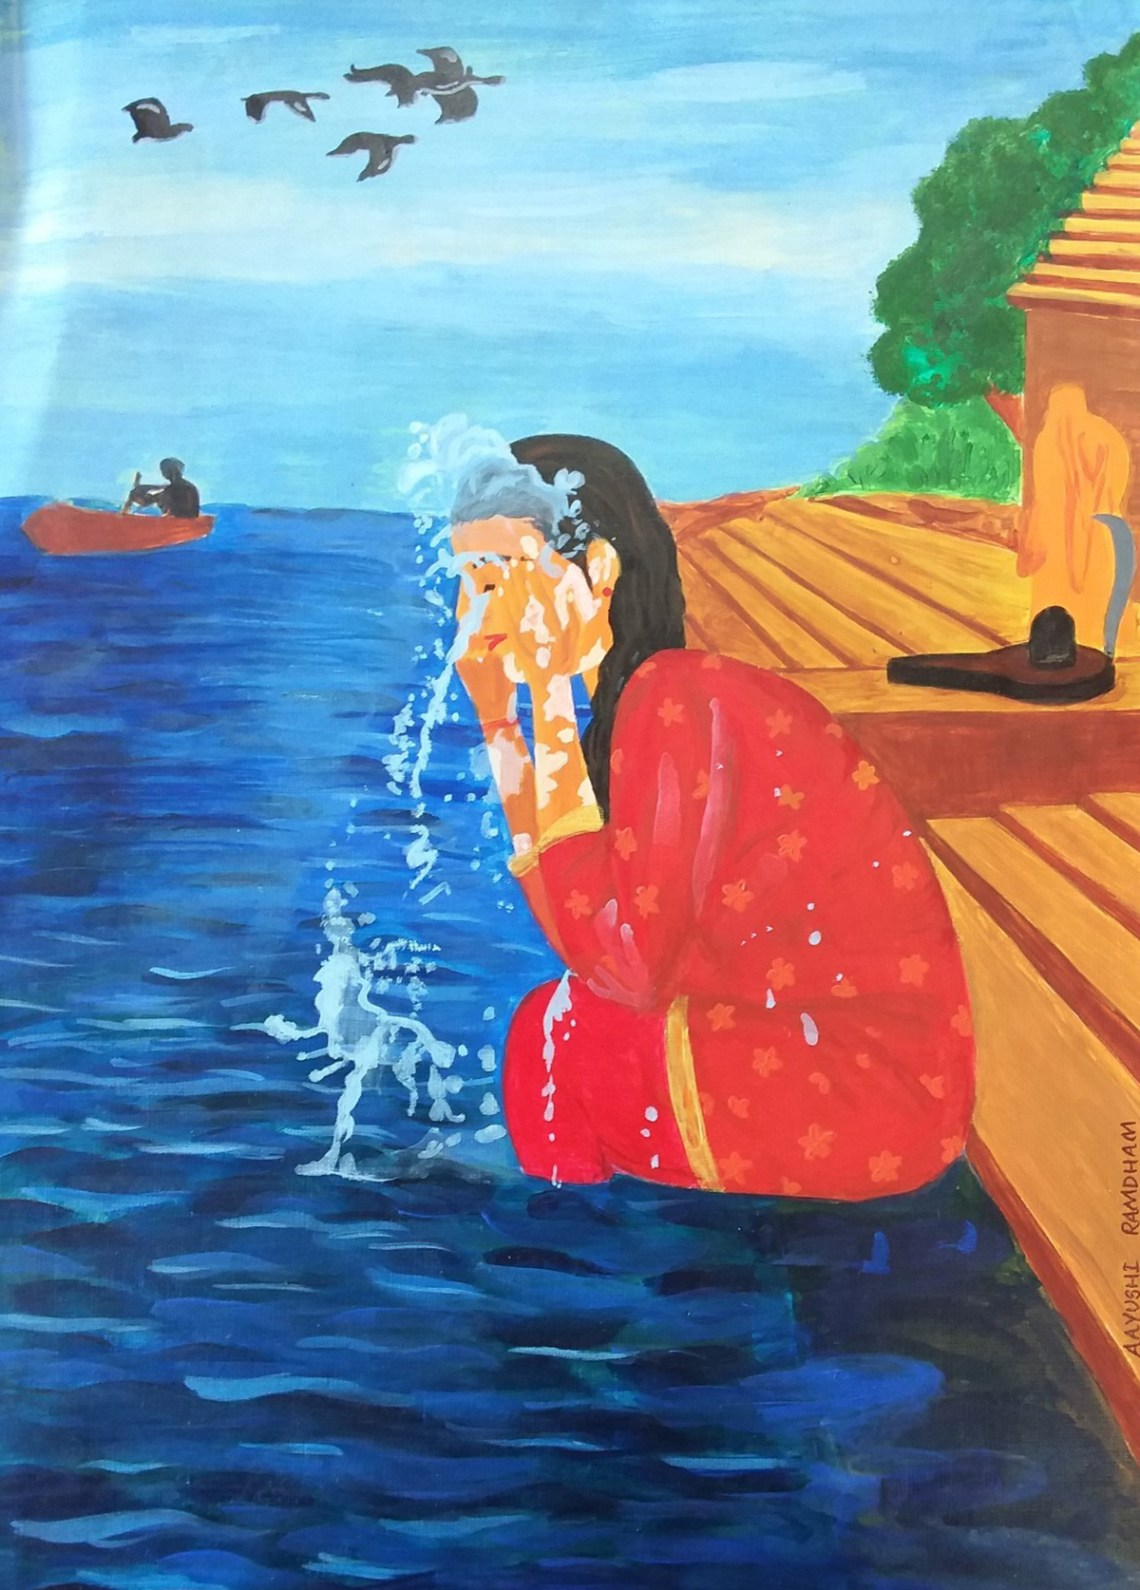 Tirtha - washing away all sins, painting by young artist Aayushi Bhagwat Ramdham from Khula Aasmaan art contest.